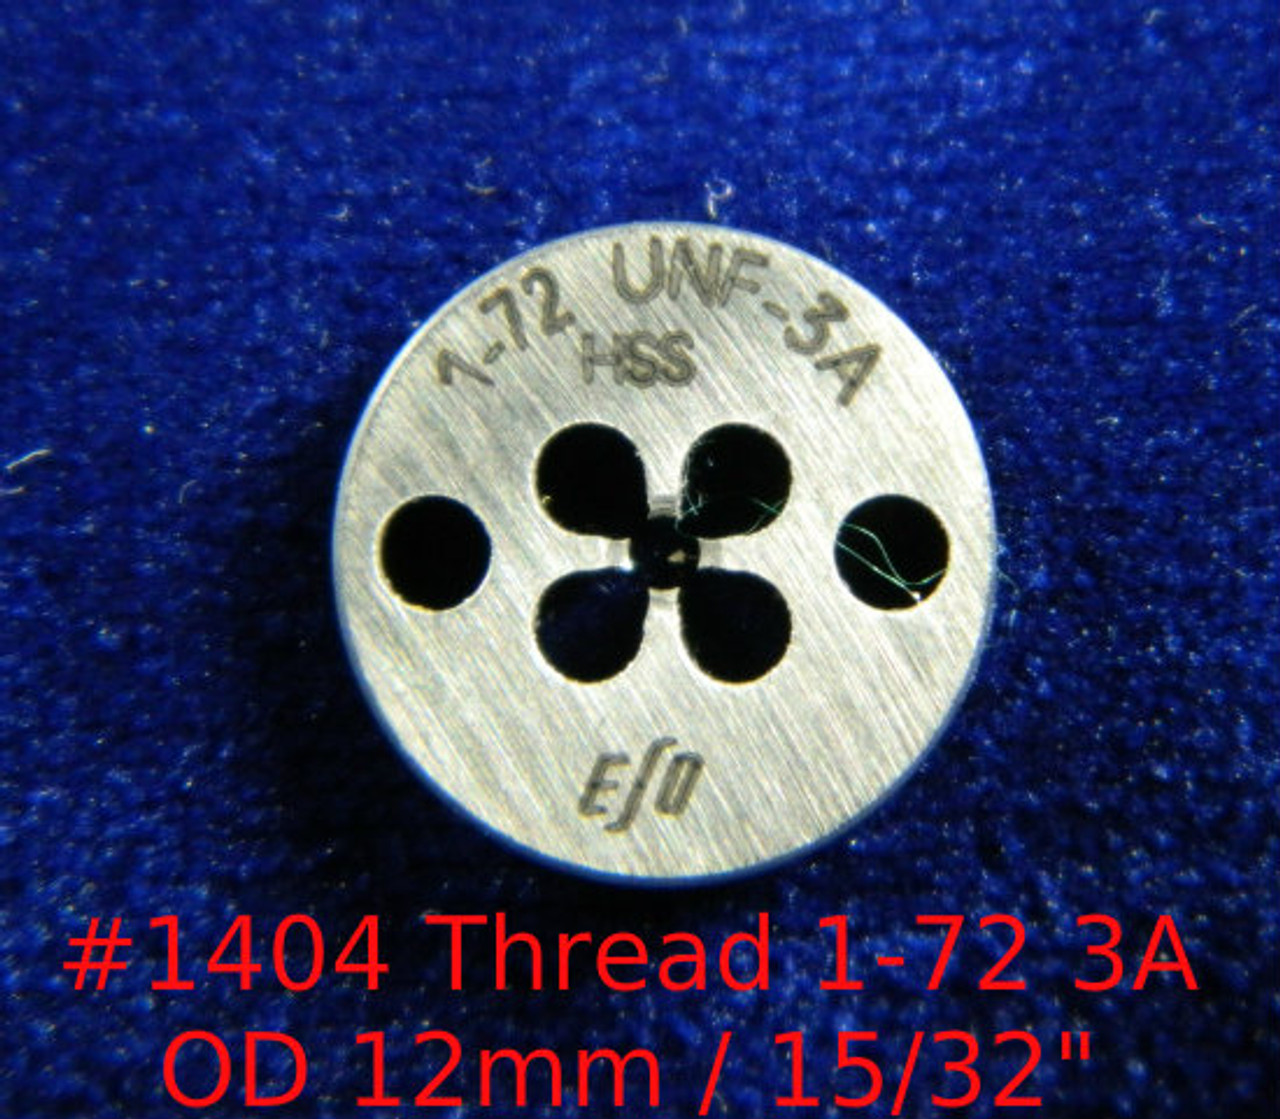 "Thread 1-72 UNF-3A; Precision Thread die for threading round stock diameter of die is 12mm / 15/32"".  Made of High speed Steel then hardened made in Switzerland."